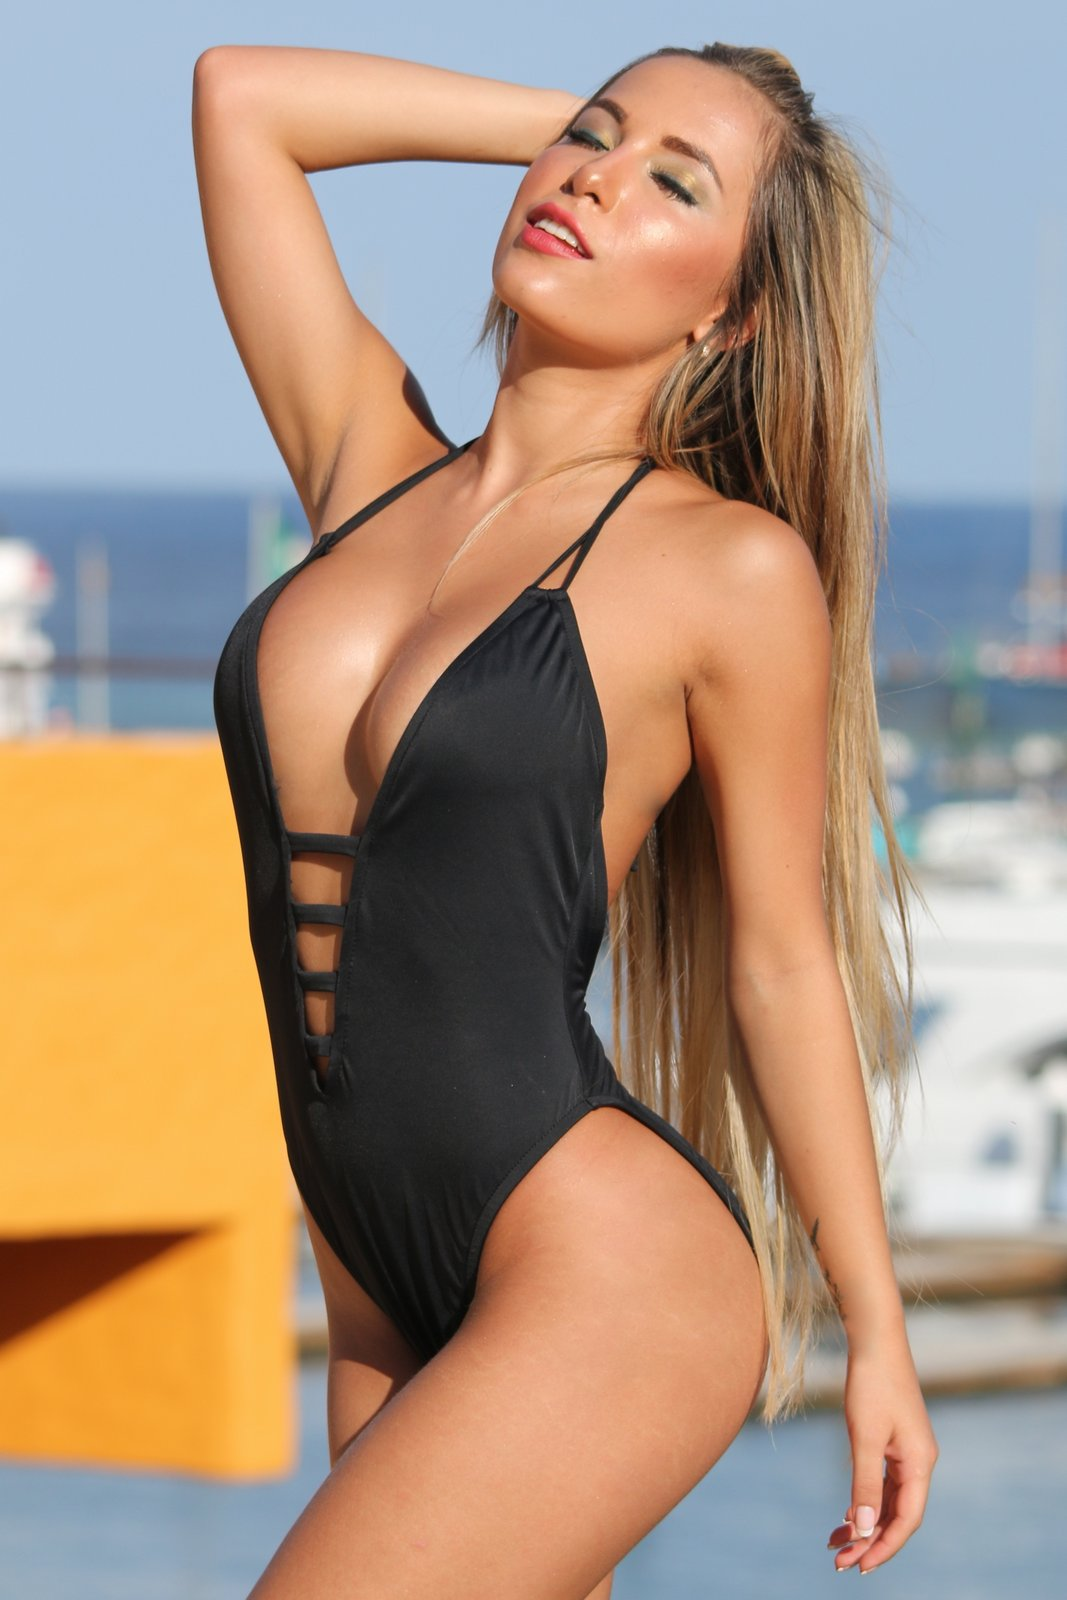 d6ea153a17c43 UjENA Black Plunge with Straps One Piece. FREE Shipping with code 1300.